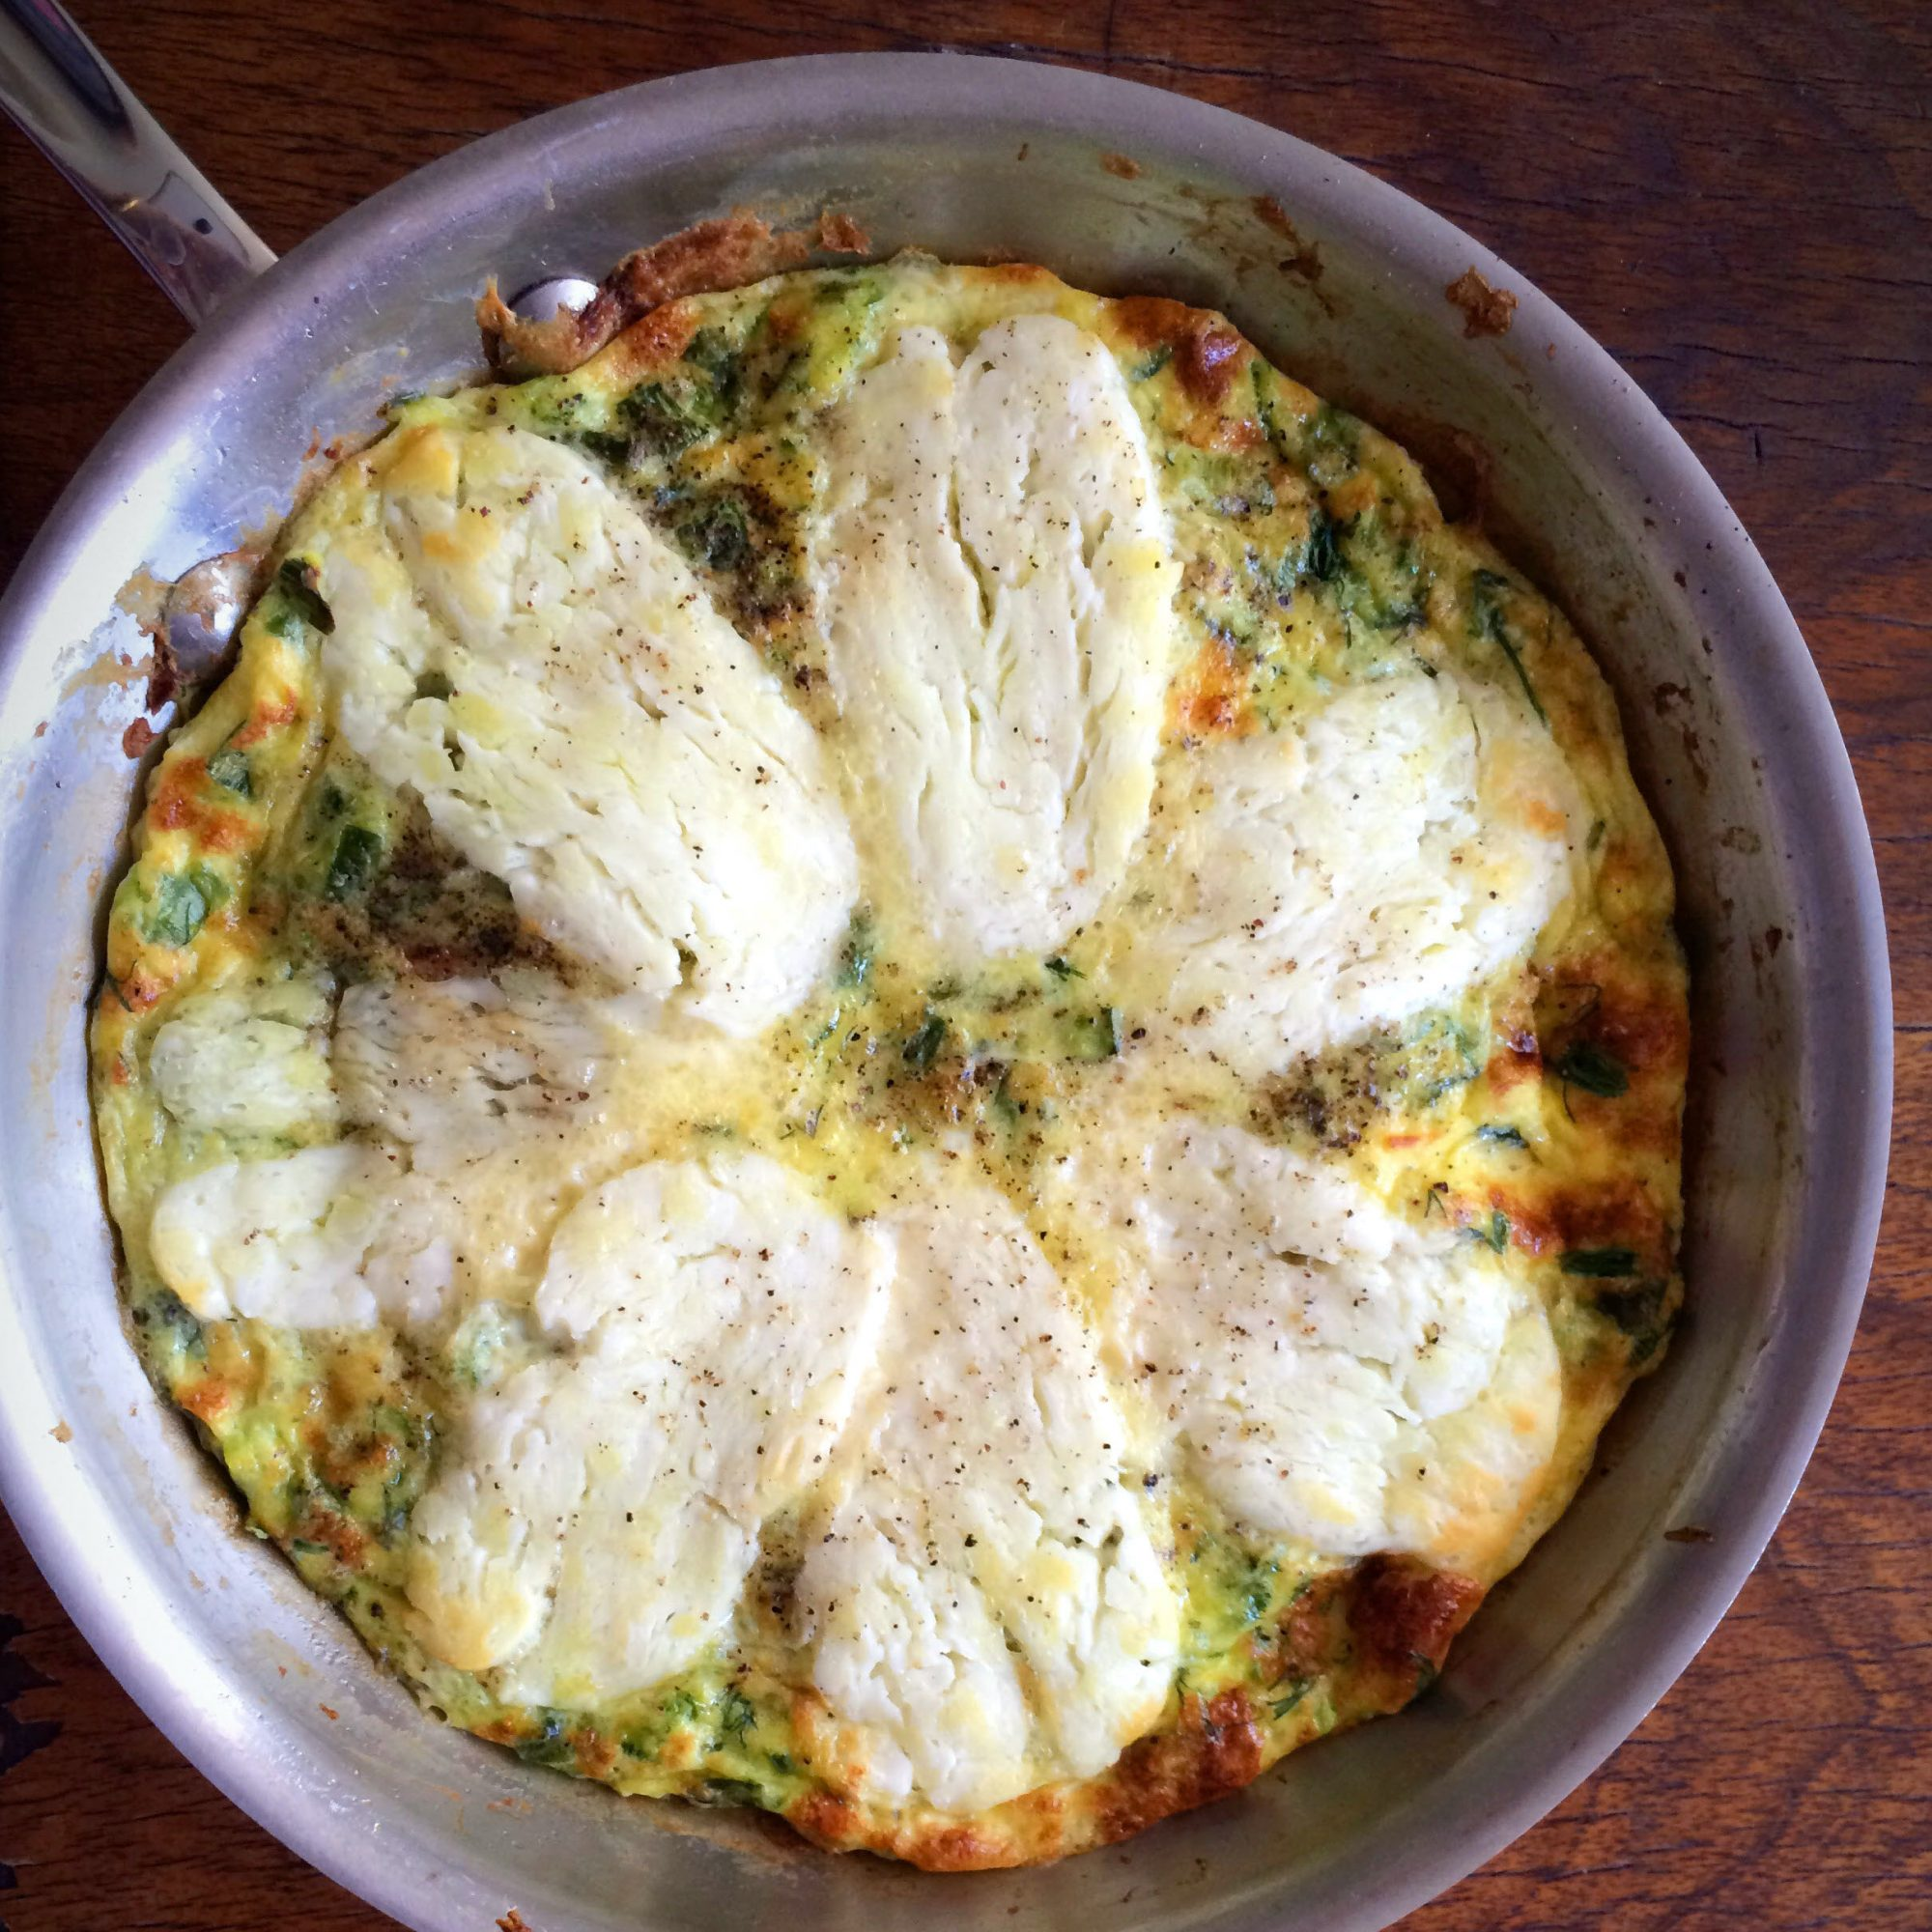 Halloumi and Zucchini Frittata in a stainless steel pan